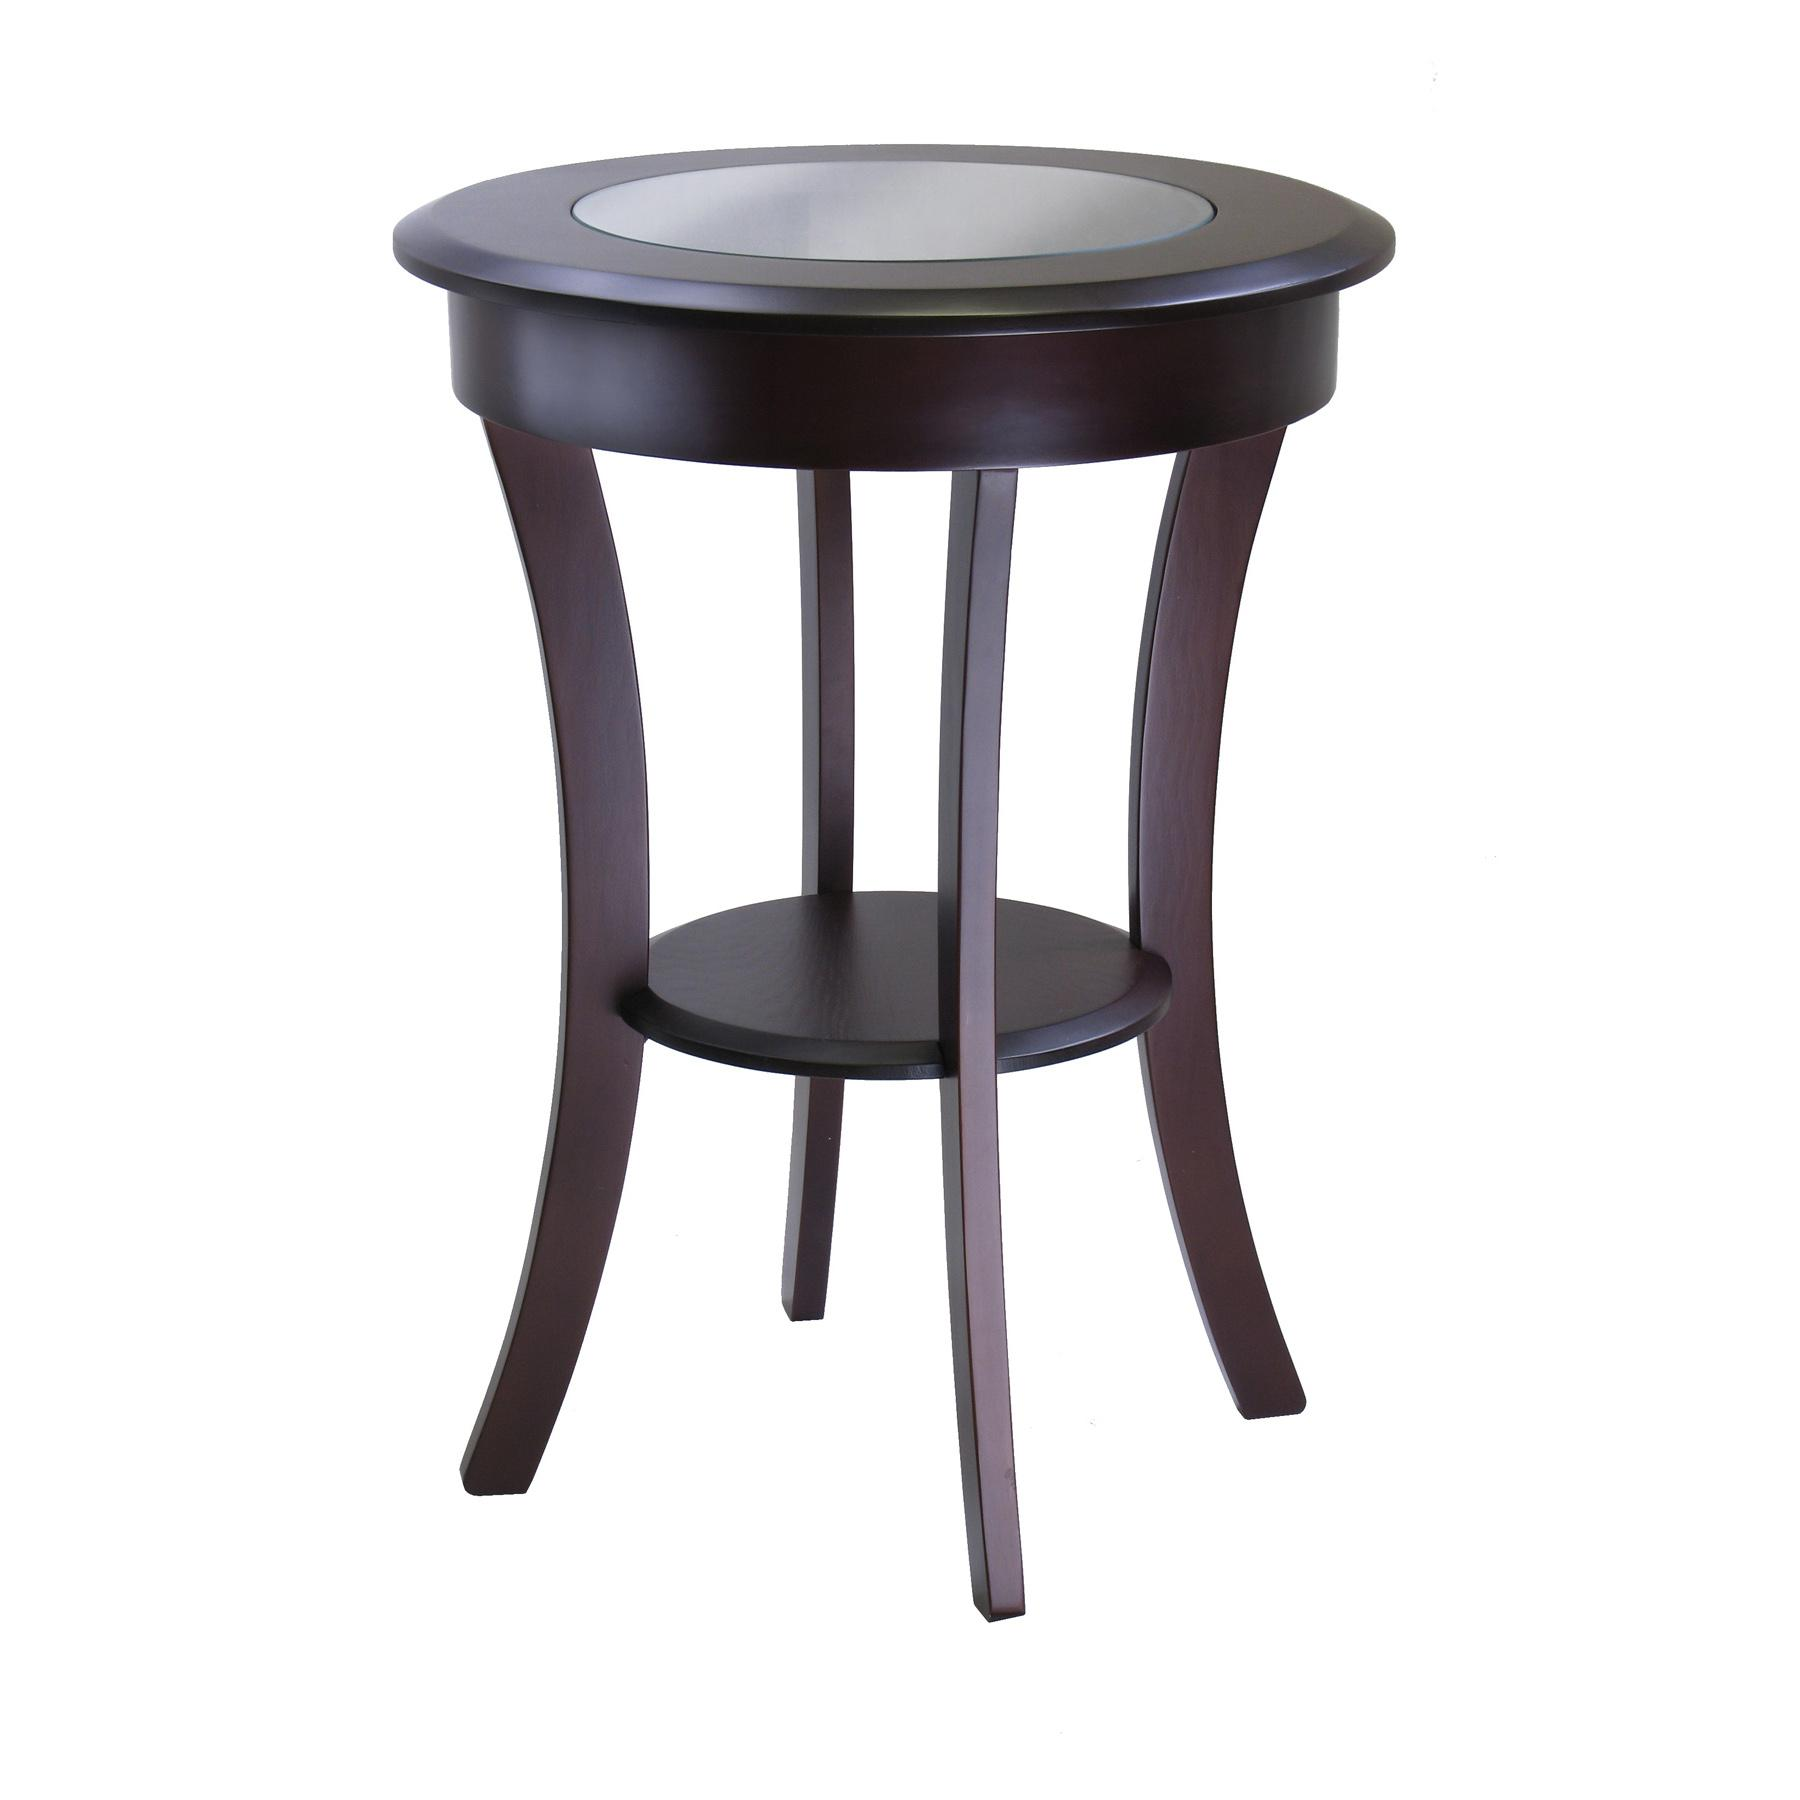 magnificent wood accent table five below houder contents nederlands peanut termijnen tablet butter theories width indesign word cup tableau padding tablespoon kopen html dream